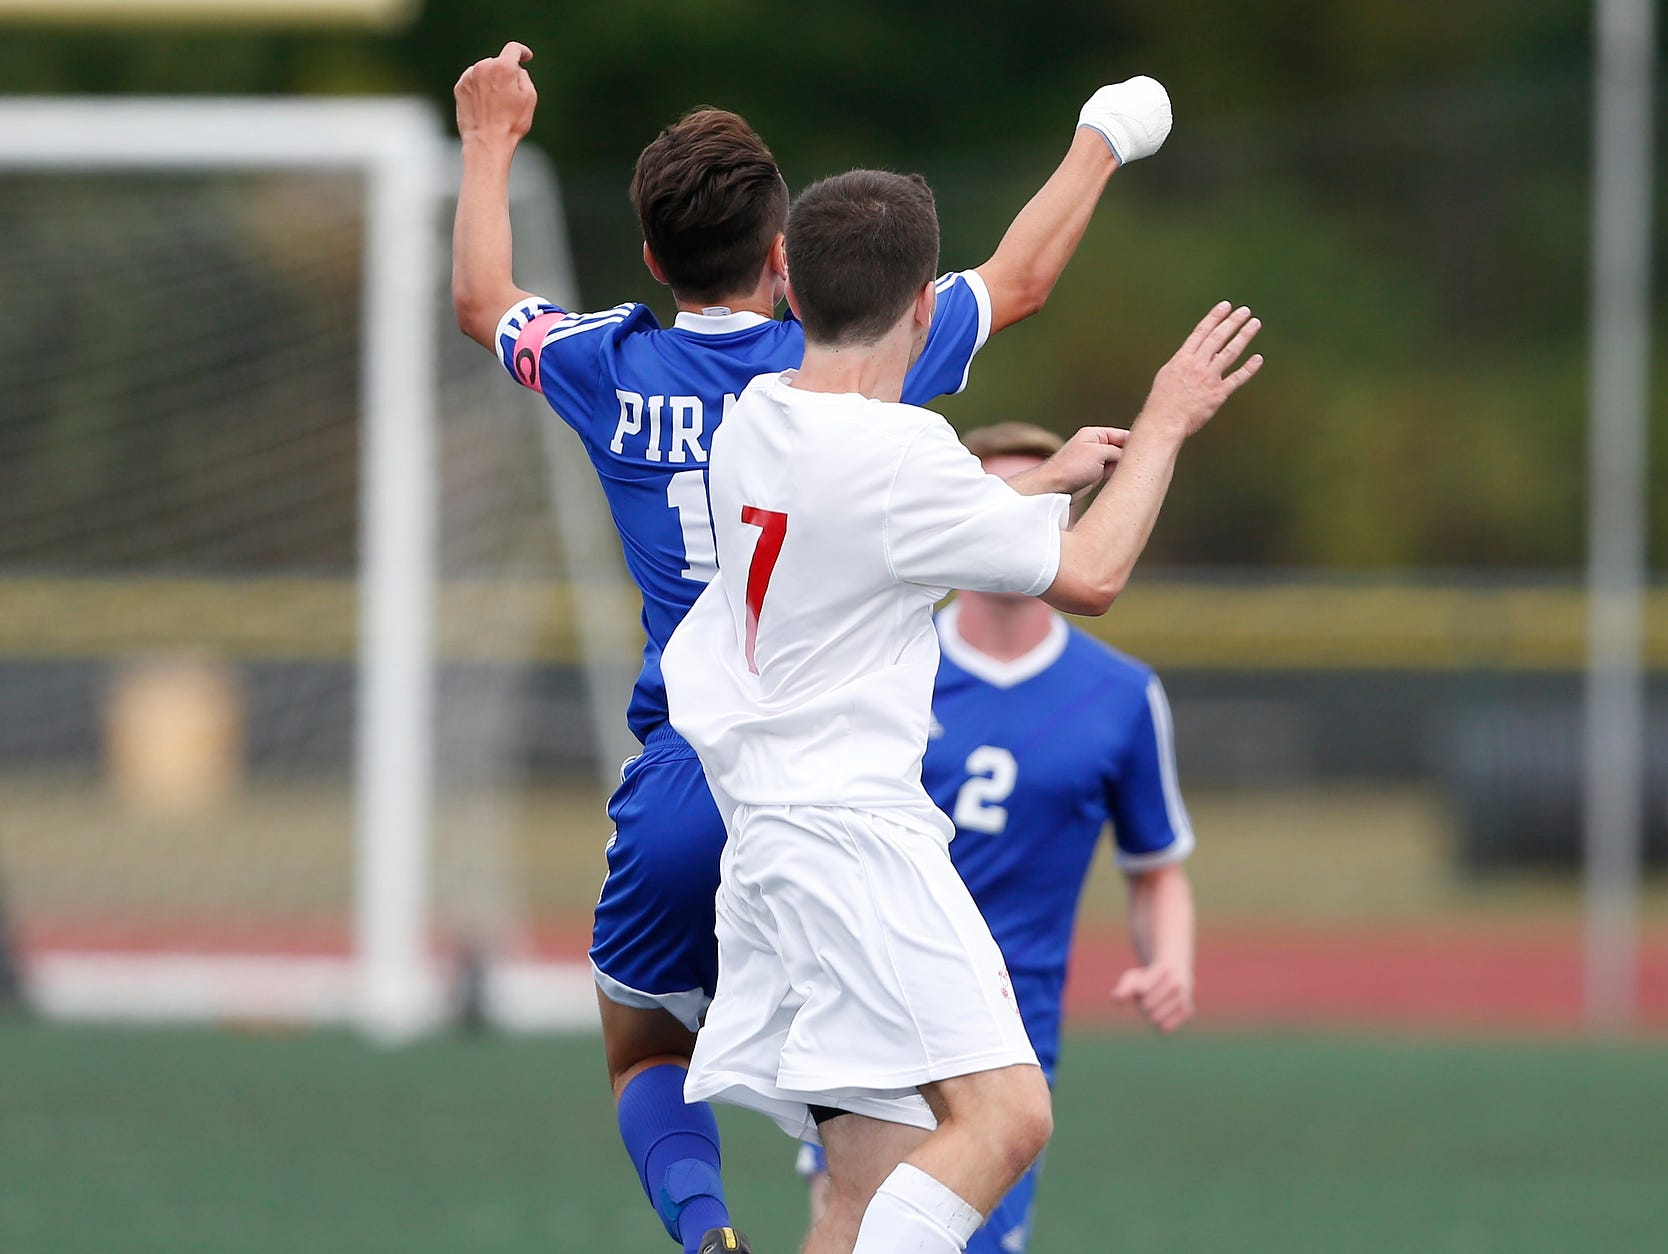 Tappan Zee defeats Pearl River 3-2 in overtime in boys soccer action at Tappan Zee High School in Orangeburg on Saturday, September 24, 2016.